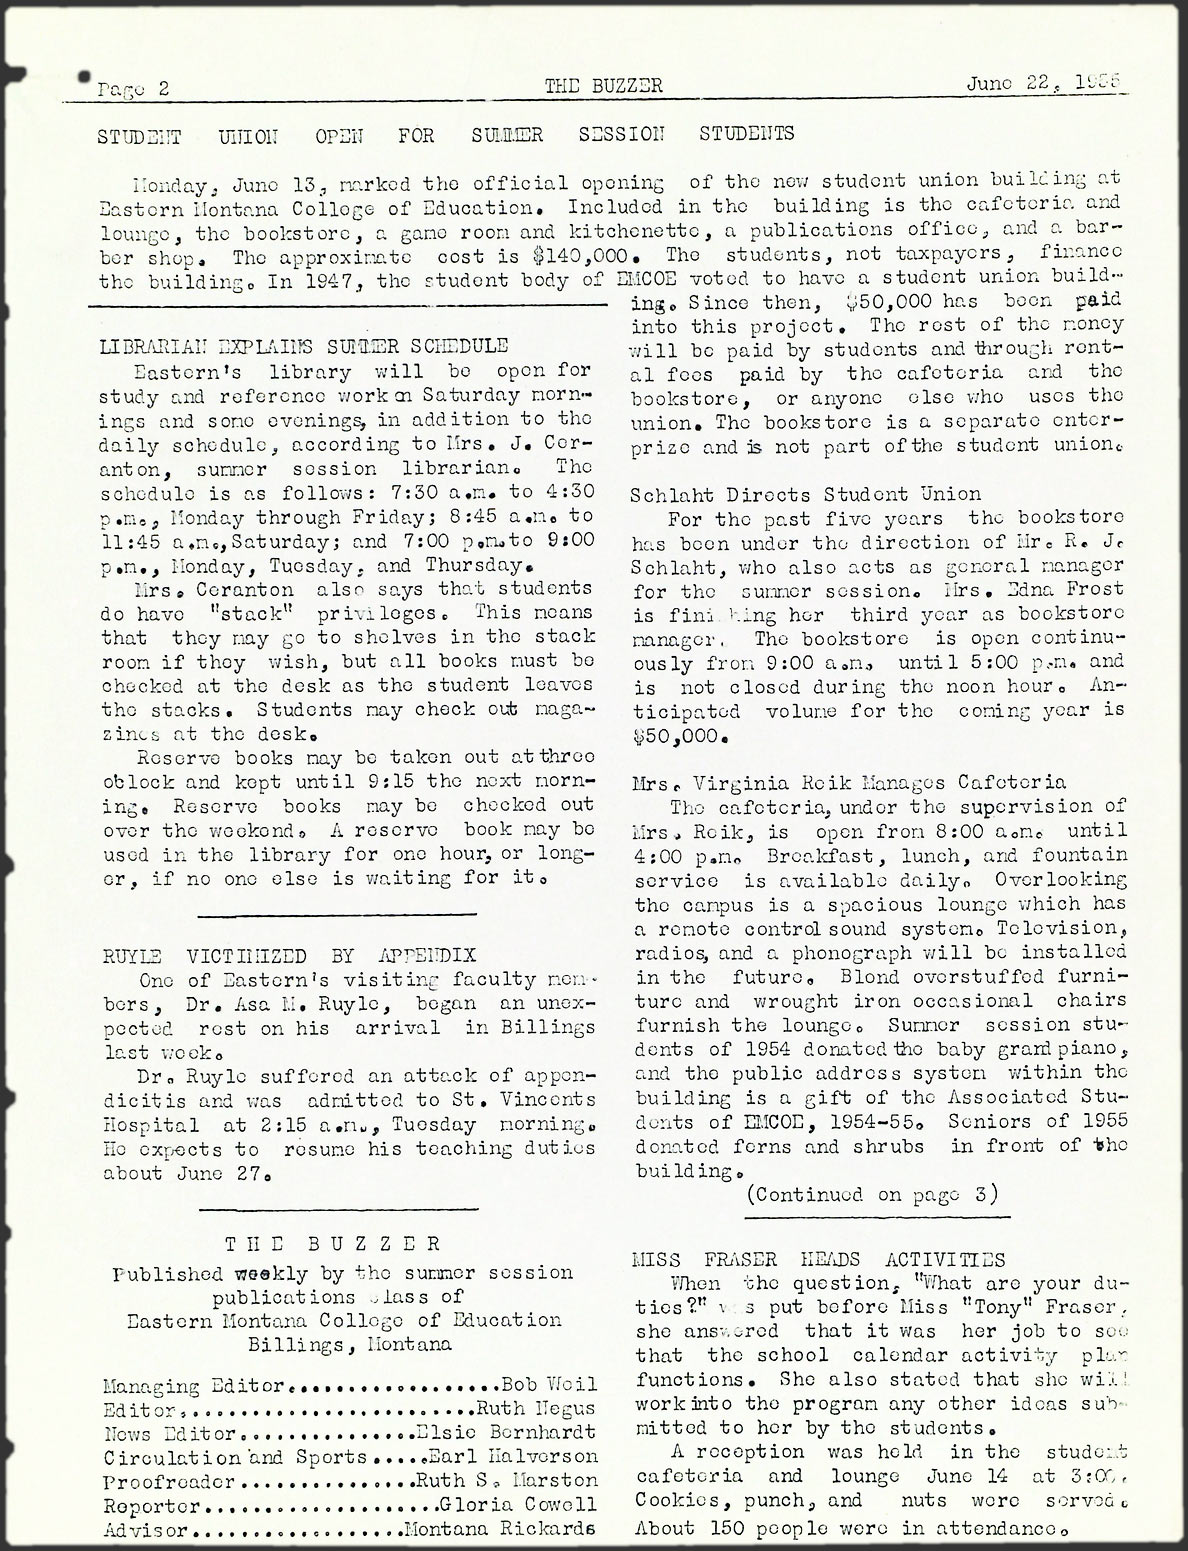 the buzzer billings mont 1955 1955 june 22 1955 page 2 image Bar Staff Resume montana newspapers